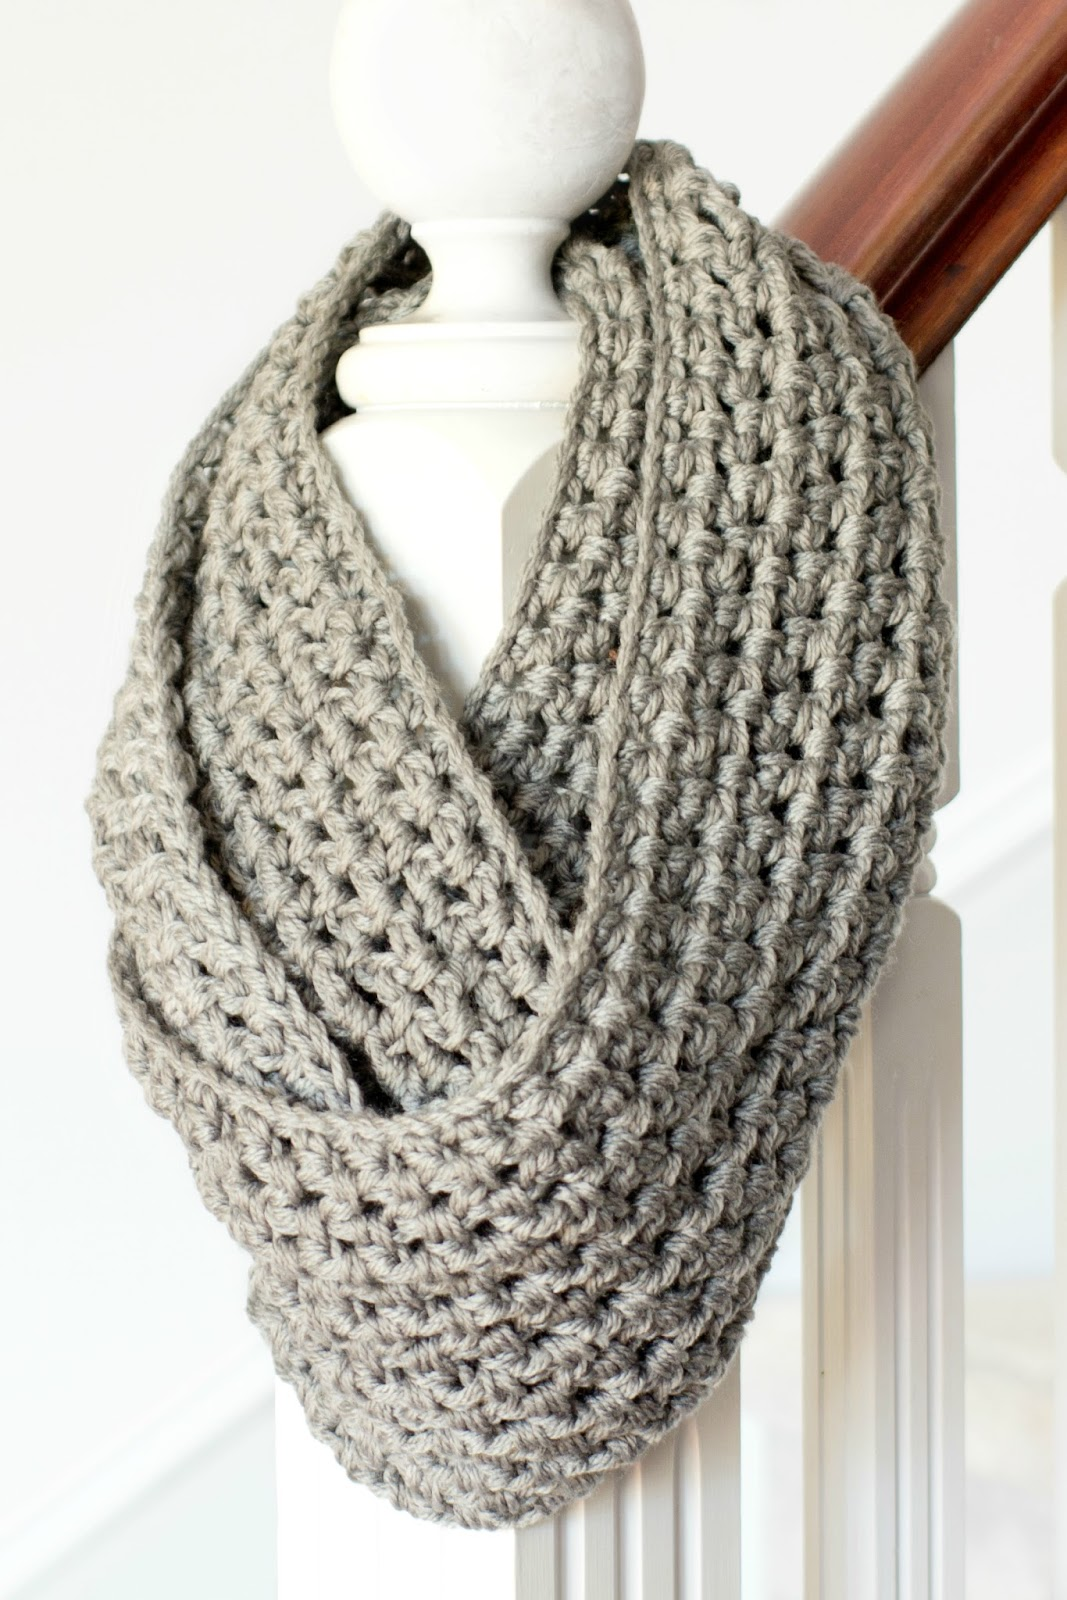 Free Crochet Pattern For Chunky Scarf : 42 Fun and Cozy DIY Scarves Crafts to Make - BigDIYIdeas.com